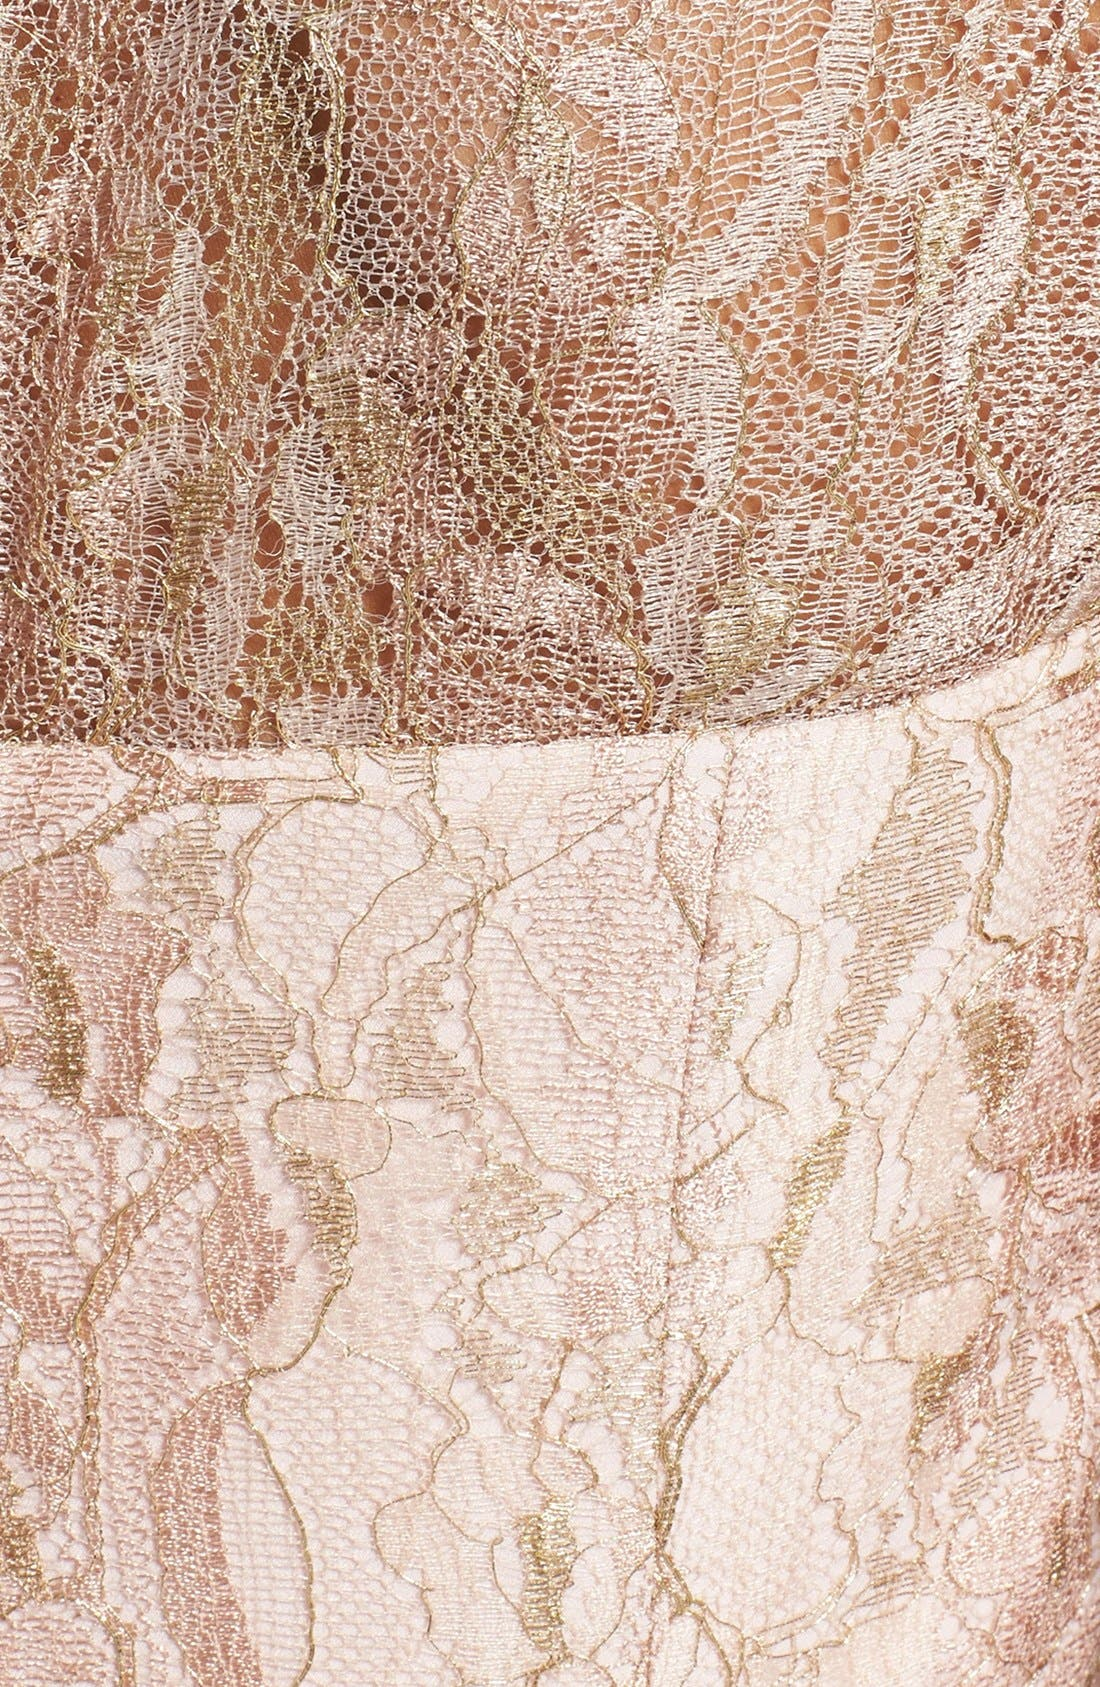 'Remma' Metallic Lace Overlay Fit & Flare Dress,                             Alternate thumbnail 4, color,                             Nude Pink